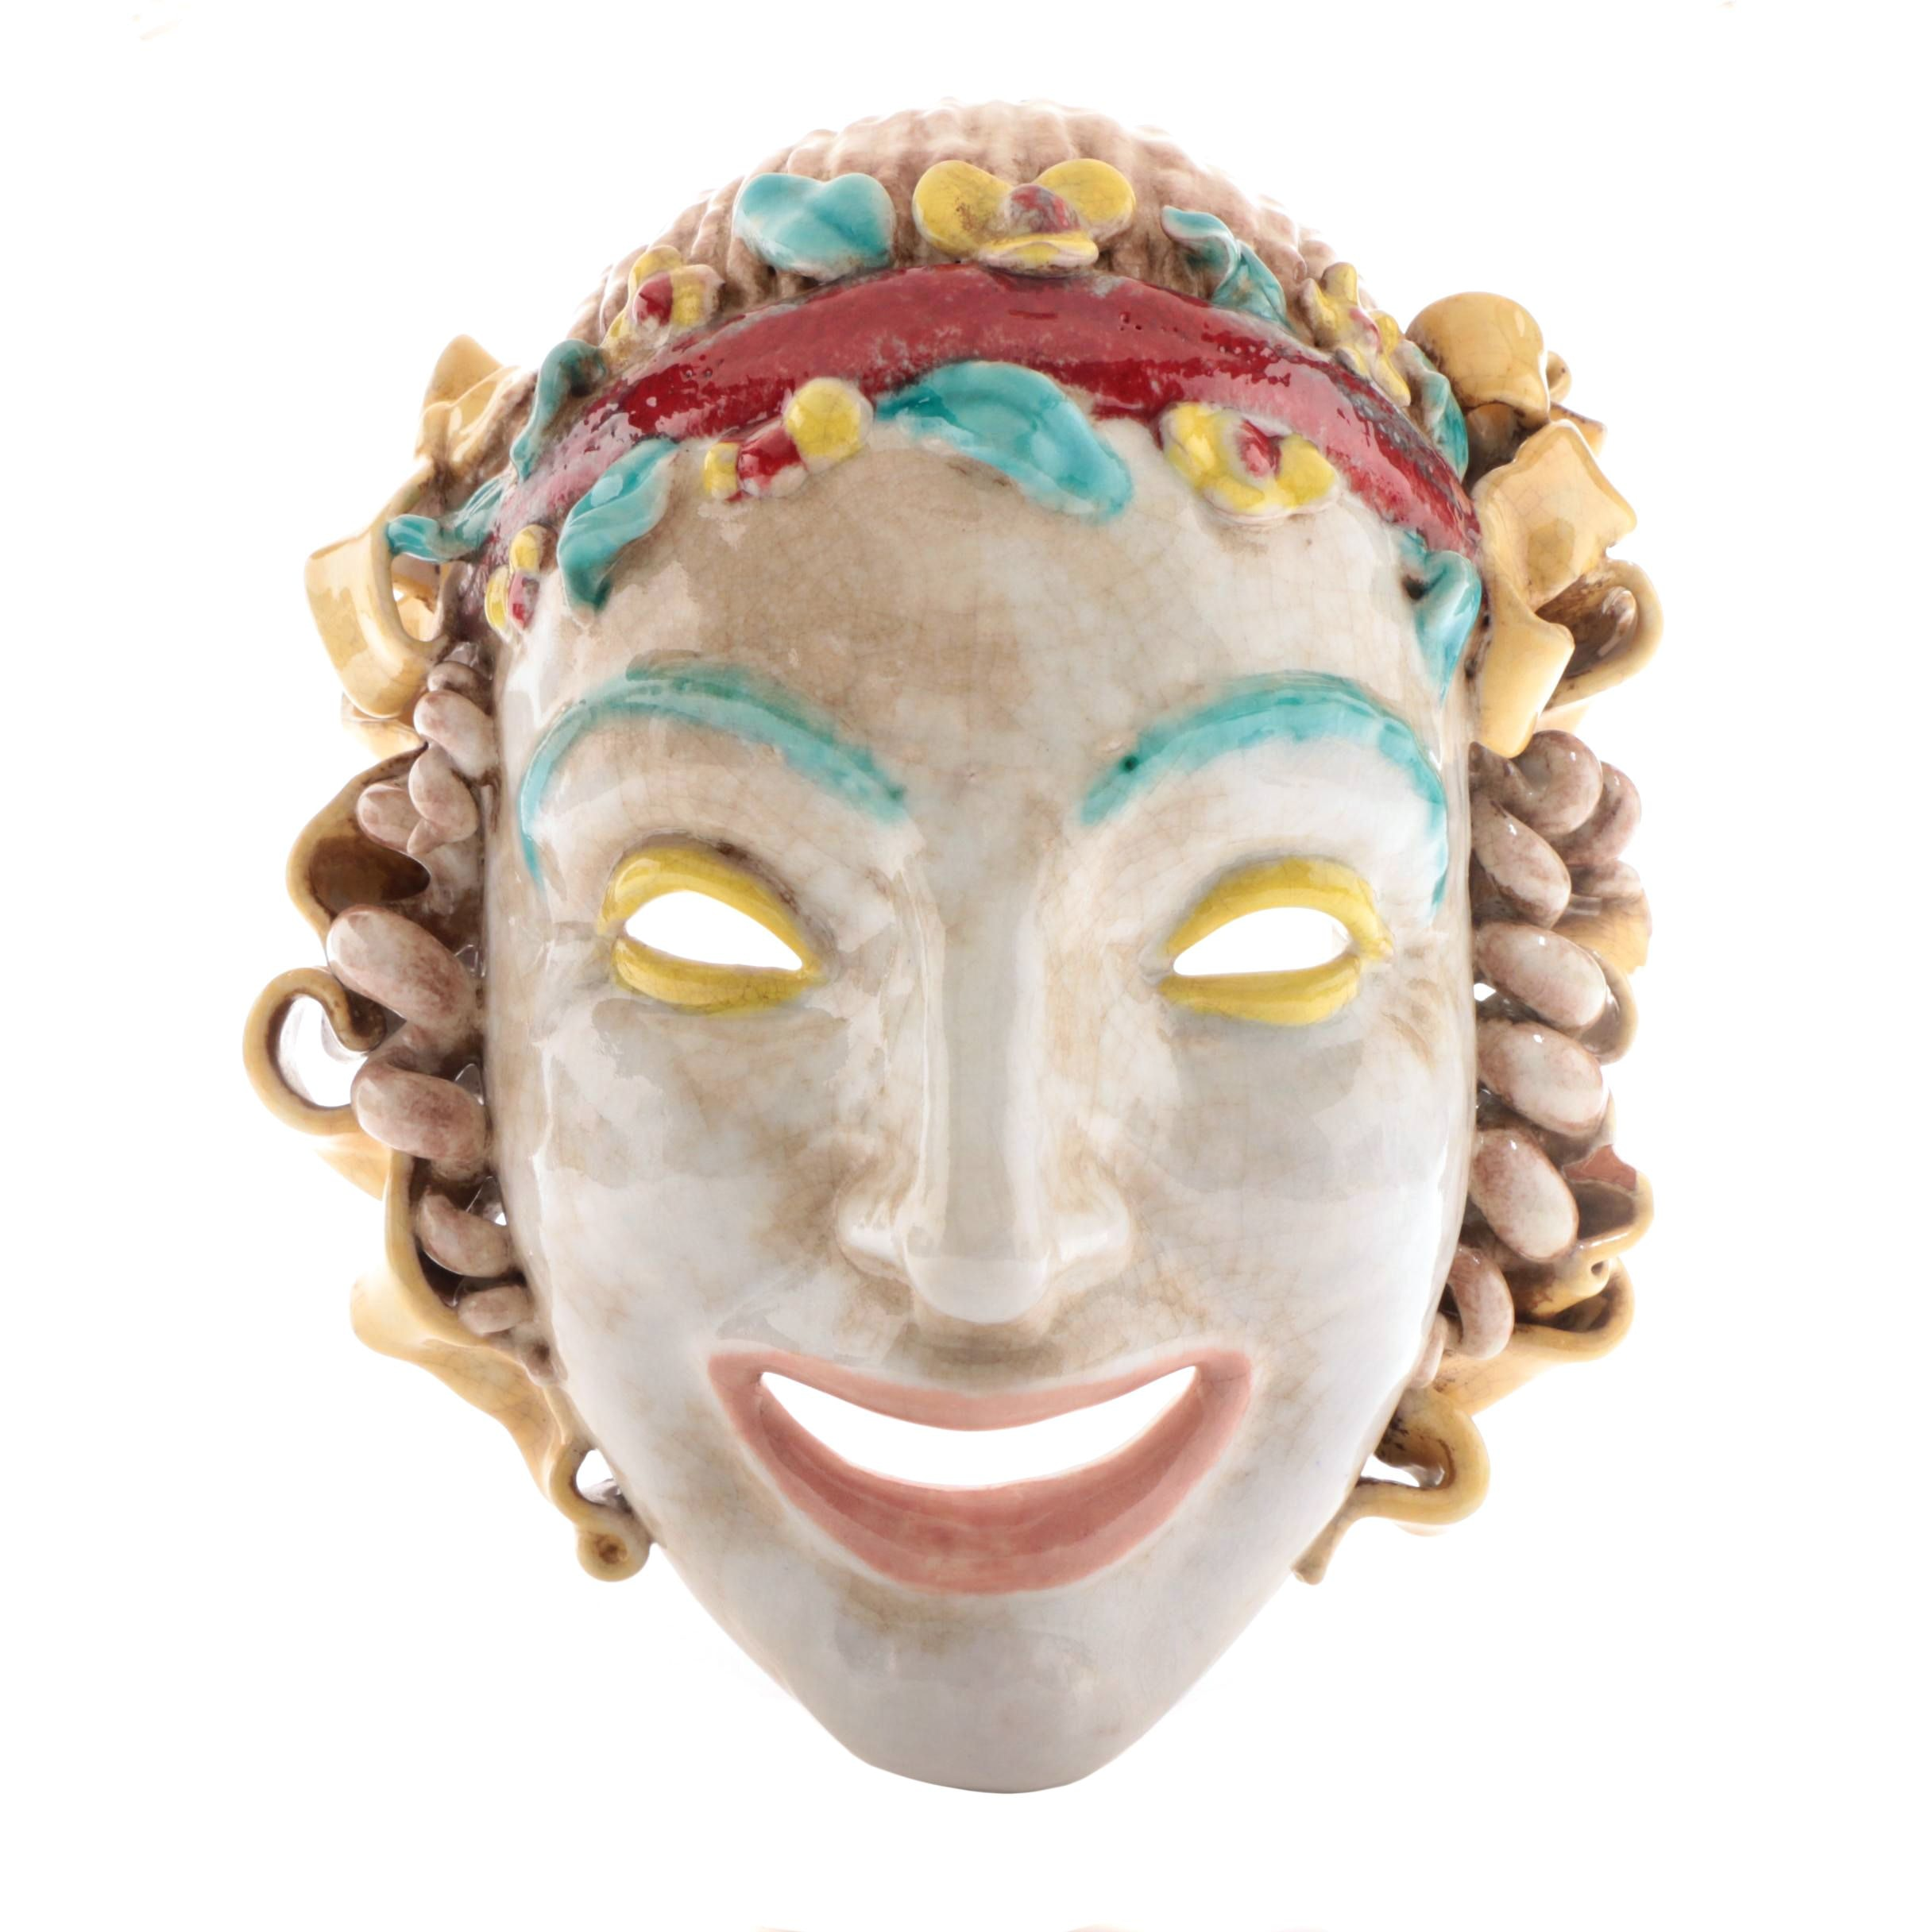 Eugenio Pattarino Ceramic Mask